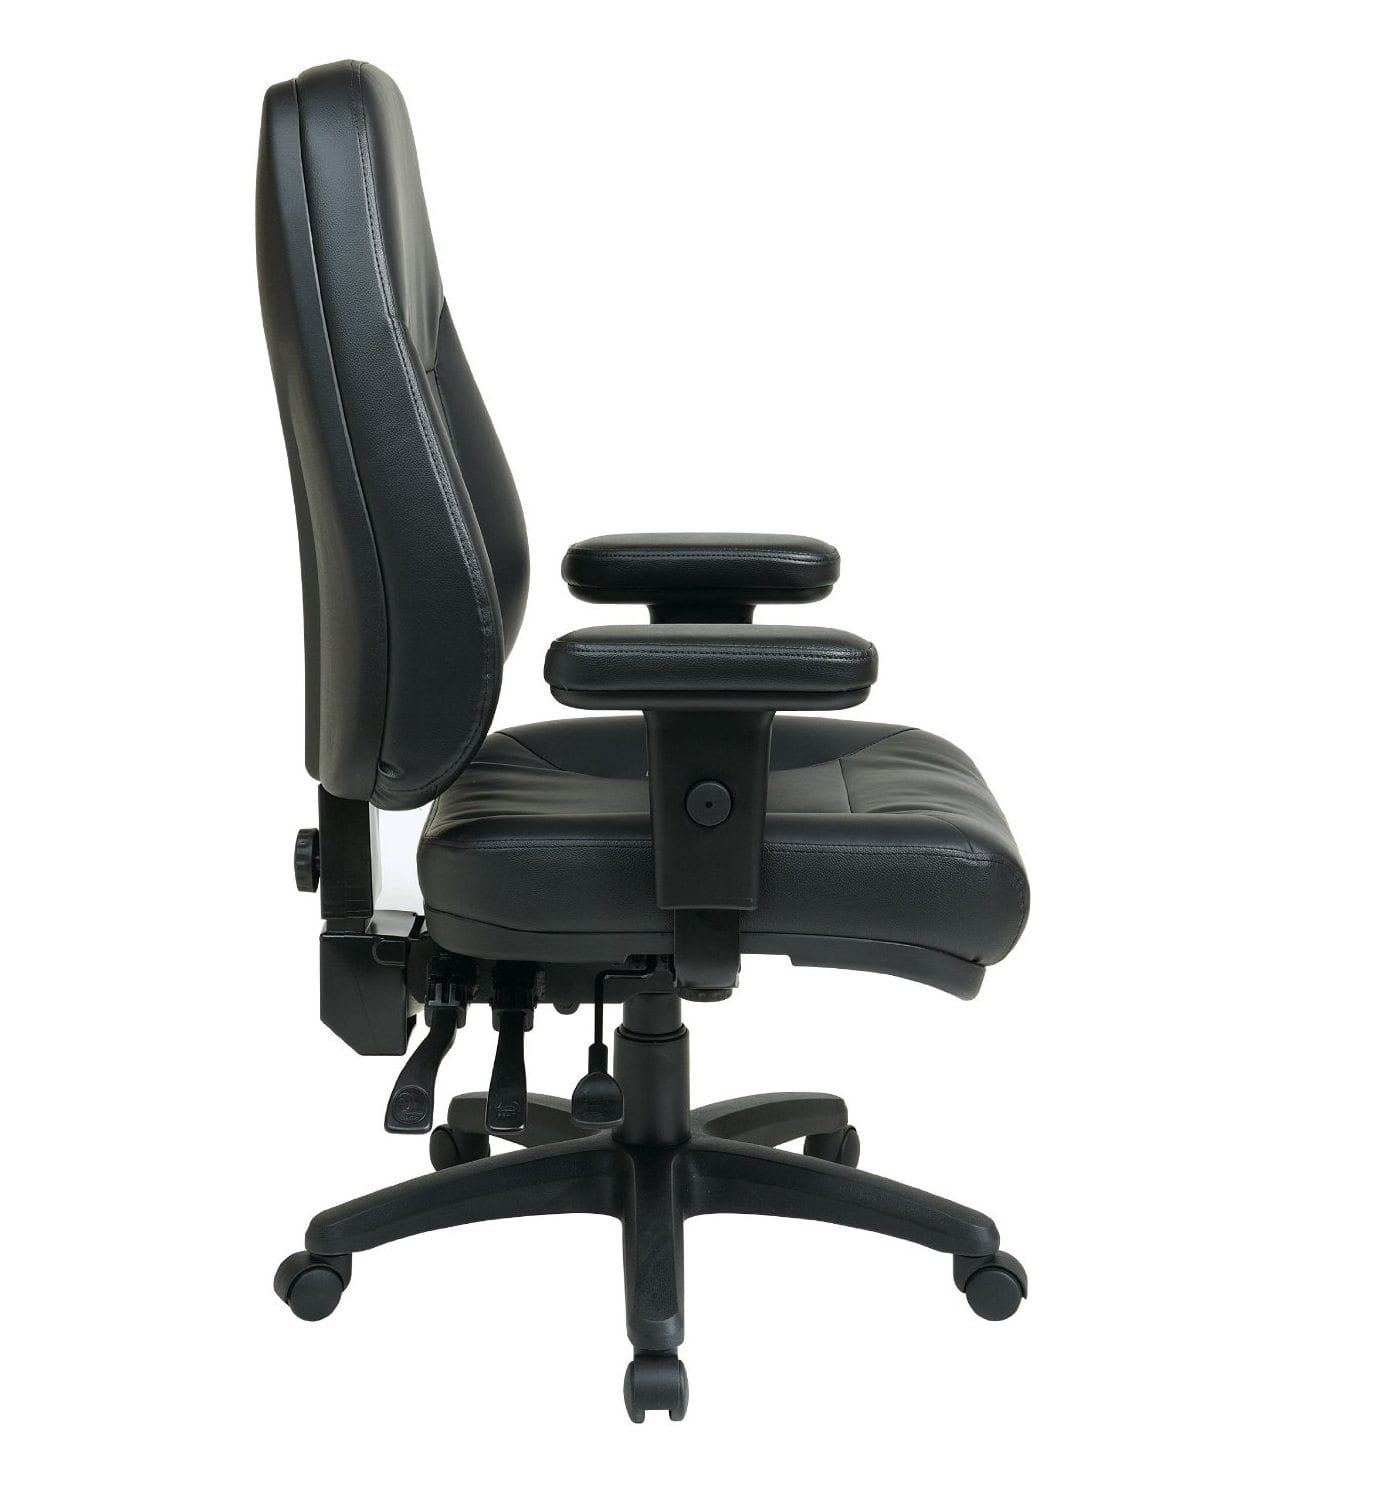 ergonomic chair posture computer adjustable arms best for el paso back clinic  915 850 0900